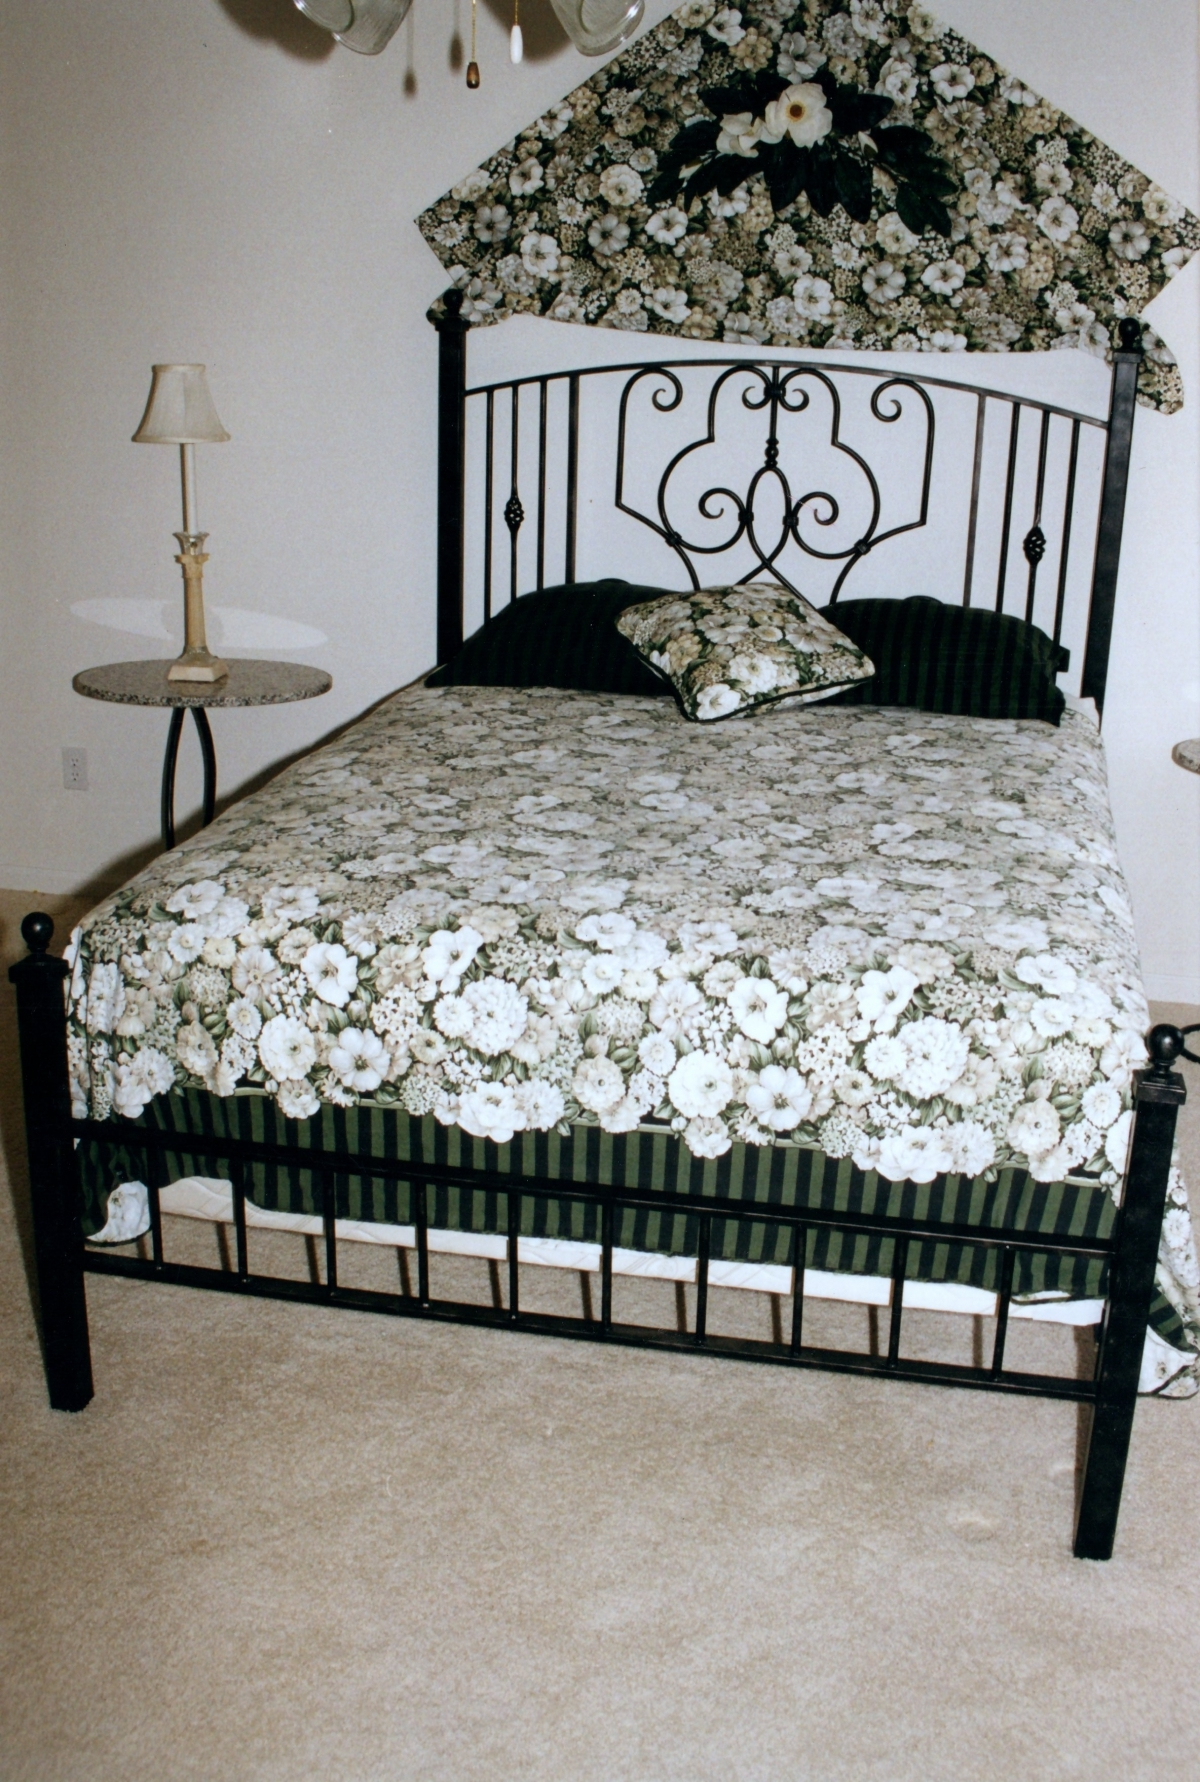 furniturebed0001